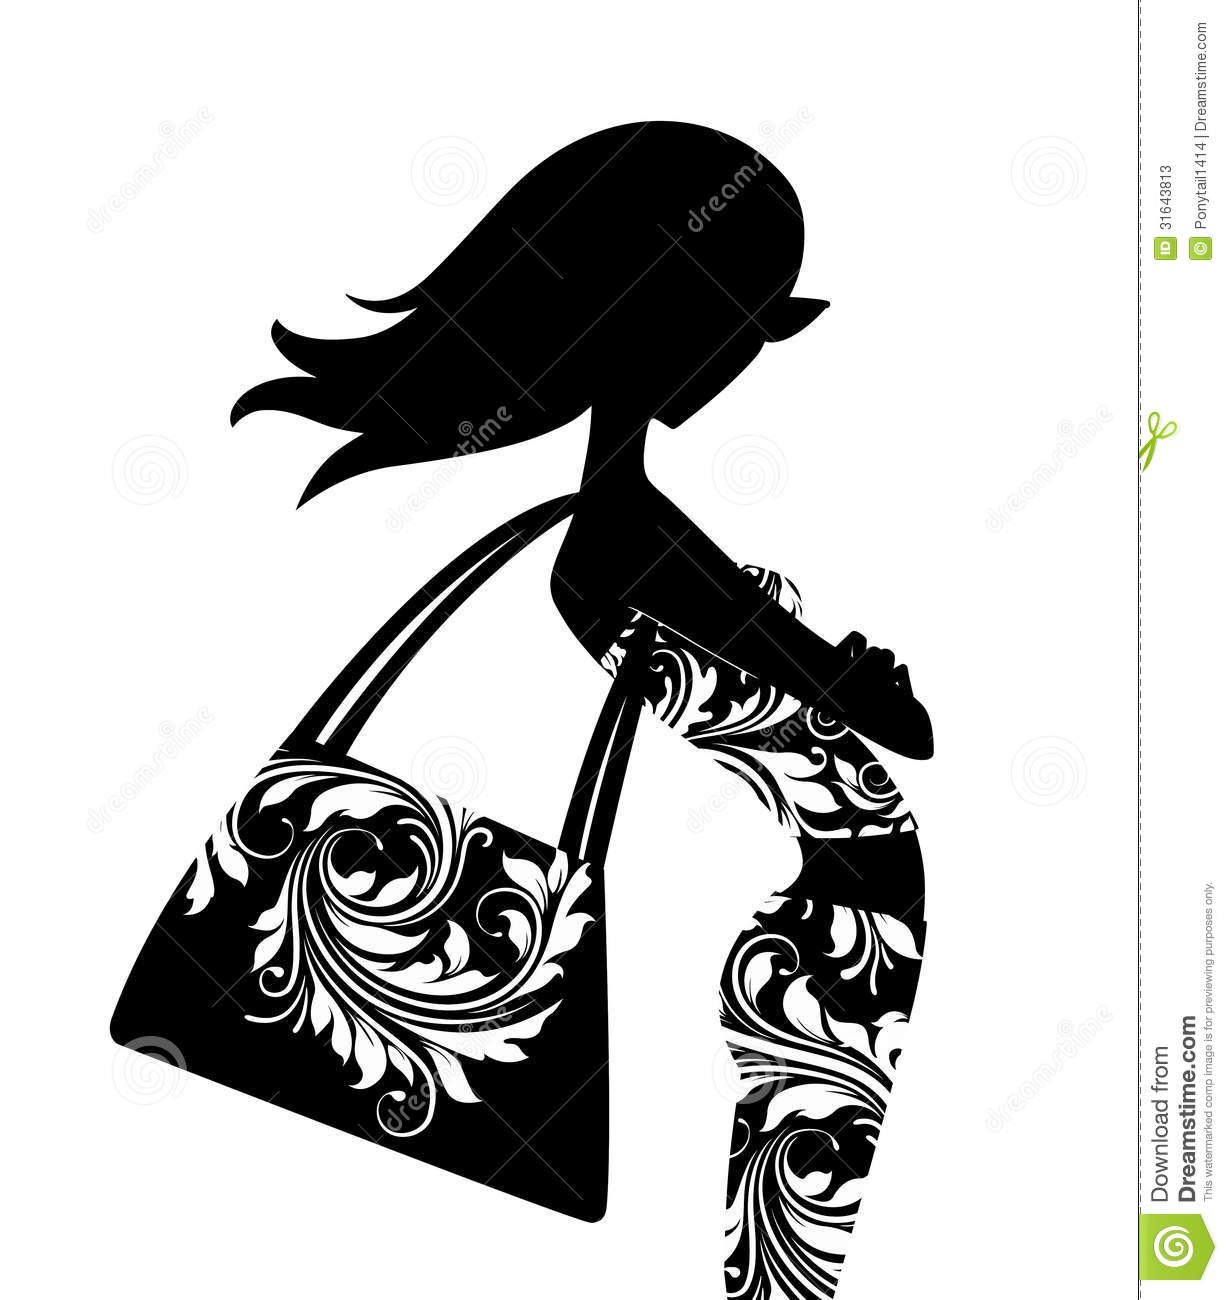 Silhouette of a chic young woman with a large handbag posing in